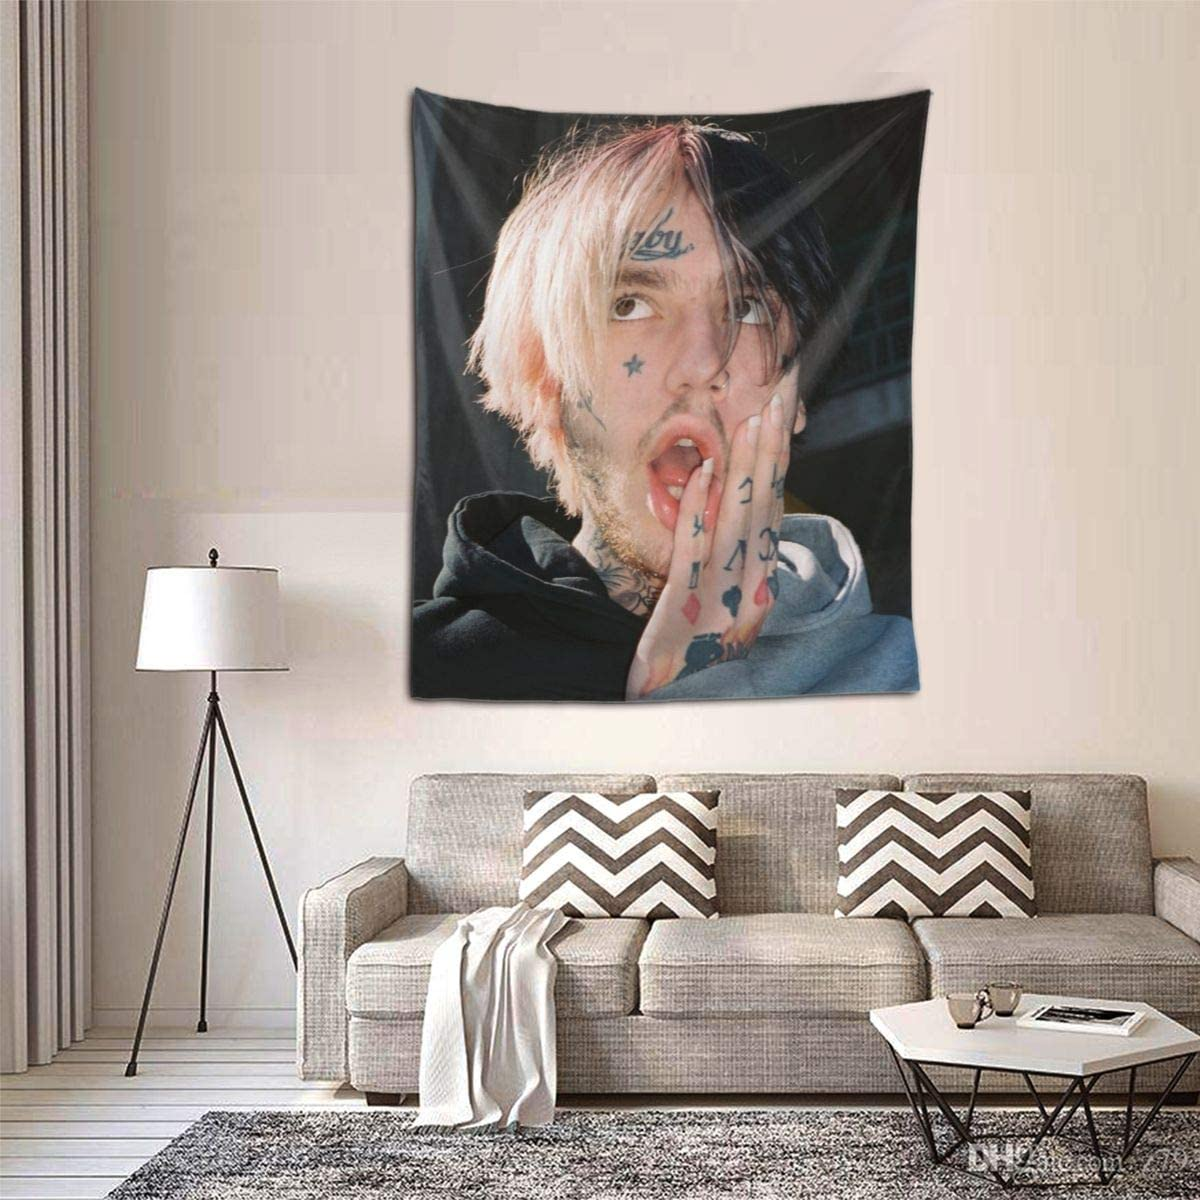 Silver-S Hip Hop Rapper Lil Peep Poster Small Tapestries Black Art Wall Hanging Throw Tapestry 60×51 Inches for Bedroom Living Room Dorm Room